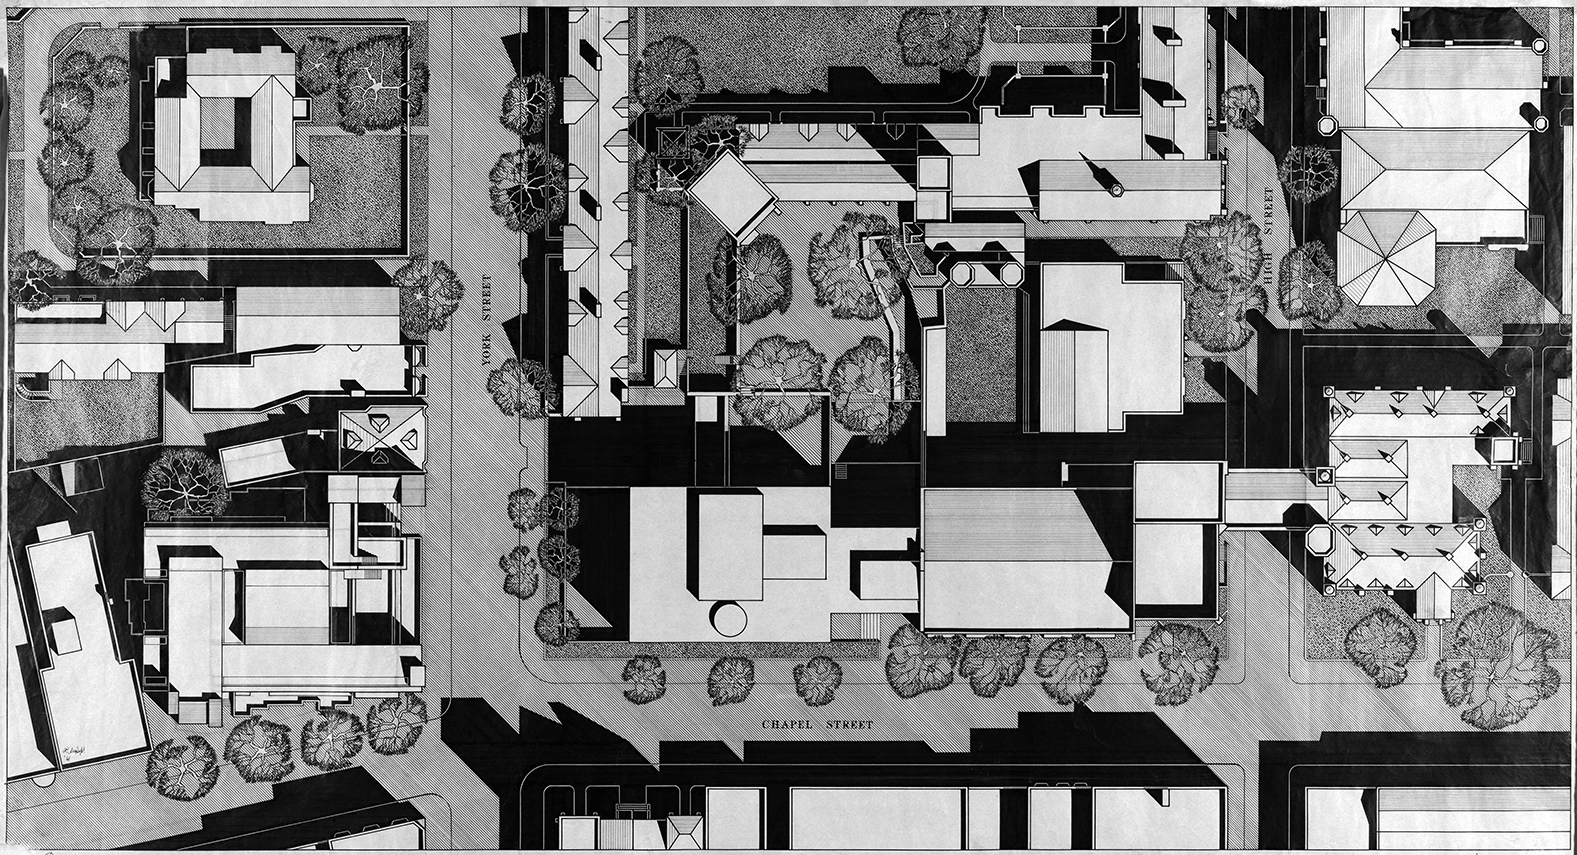 Art and Architecture Building, Yale University, New Haven, Connecticut. Site Plan Rendering. 1961.